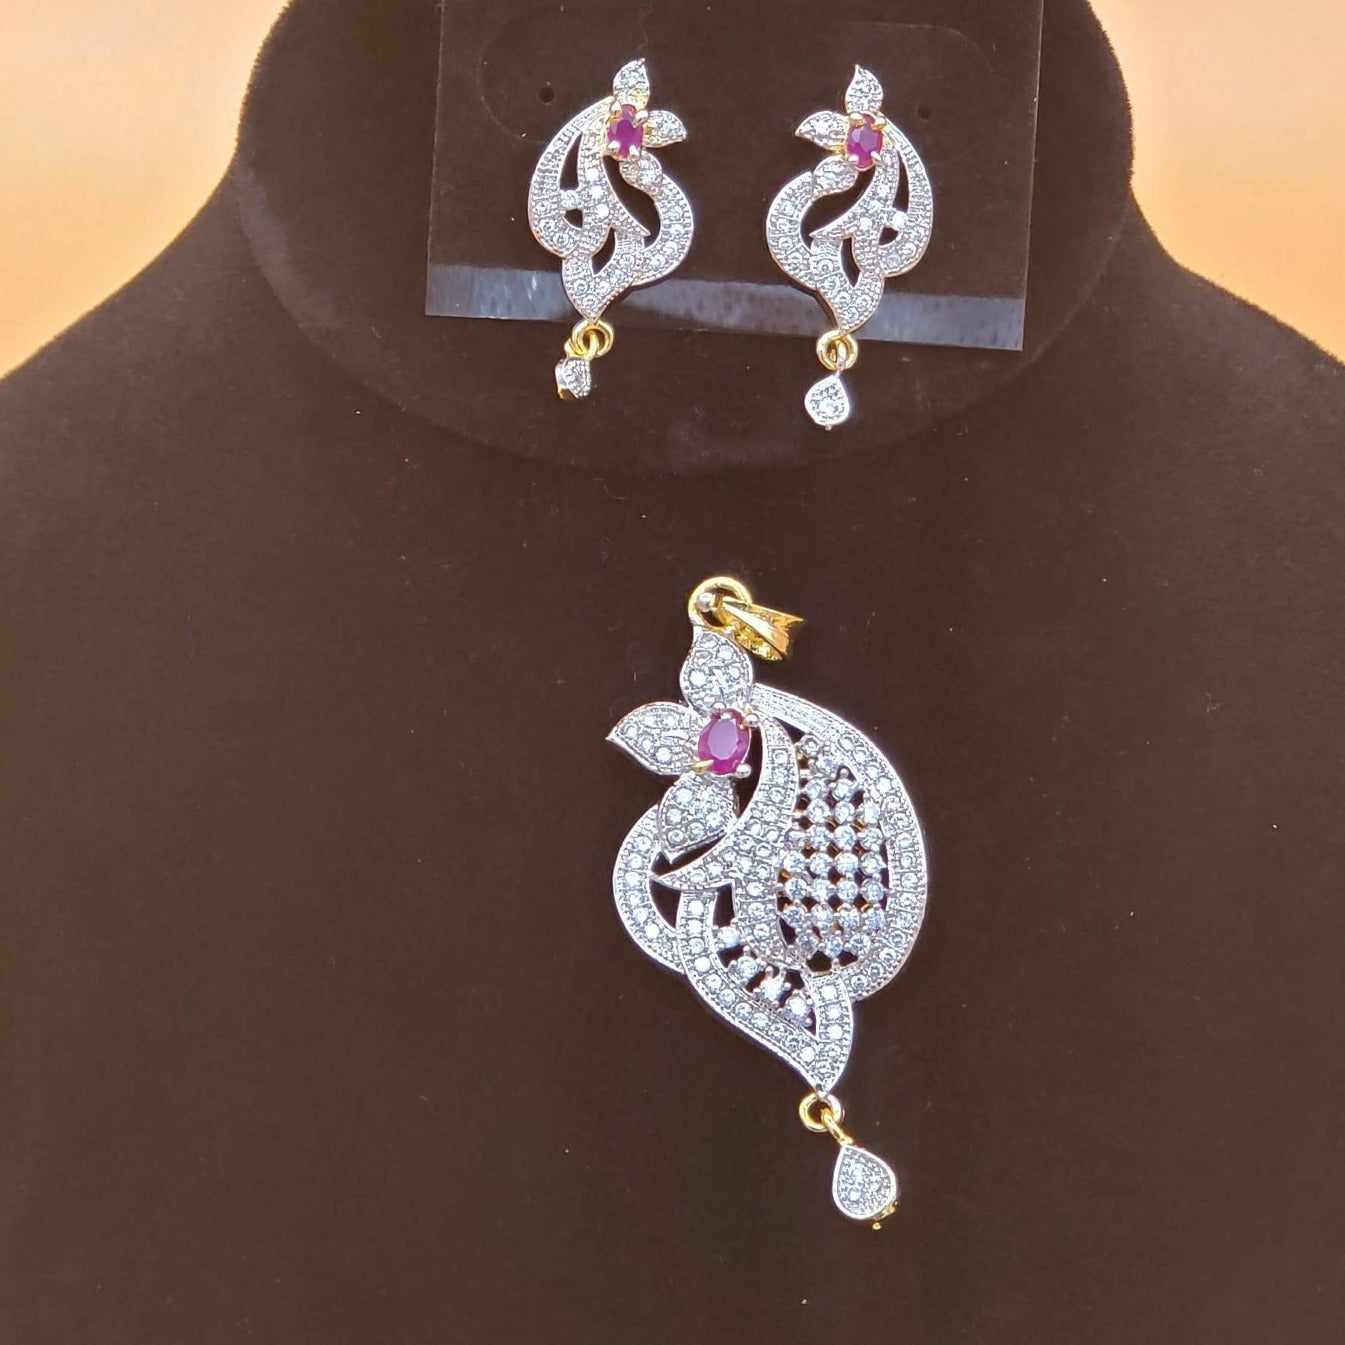 cz pendent set/american diamond jewelry/cubic zircon jewelry/Indian jewelry/artificial jewelry set/designer pendent set with earrings/cz set